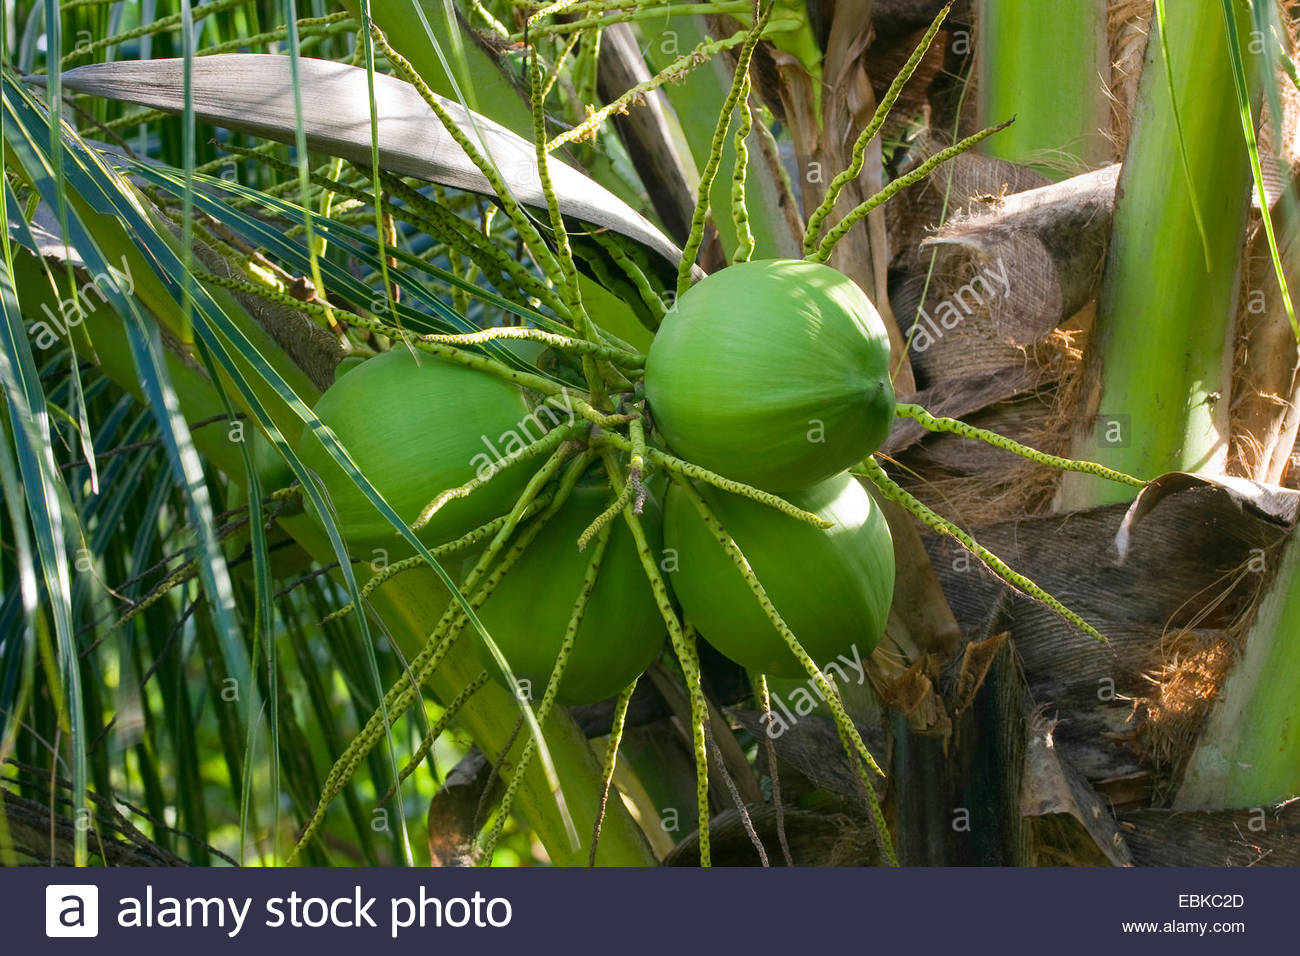 coconut palm cocos nucifera coconuts on a tree thailand stockfoto lizenzfreies bild. Black Bedroom Furniture Sets. Home Design Ideas